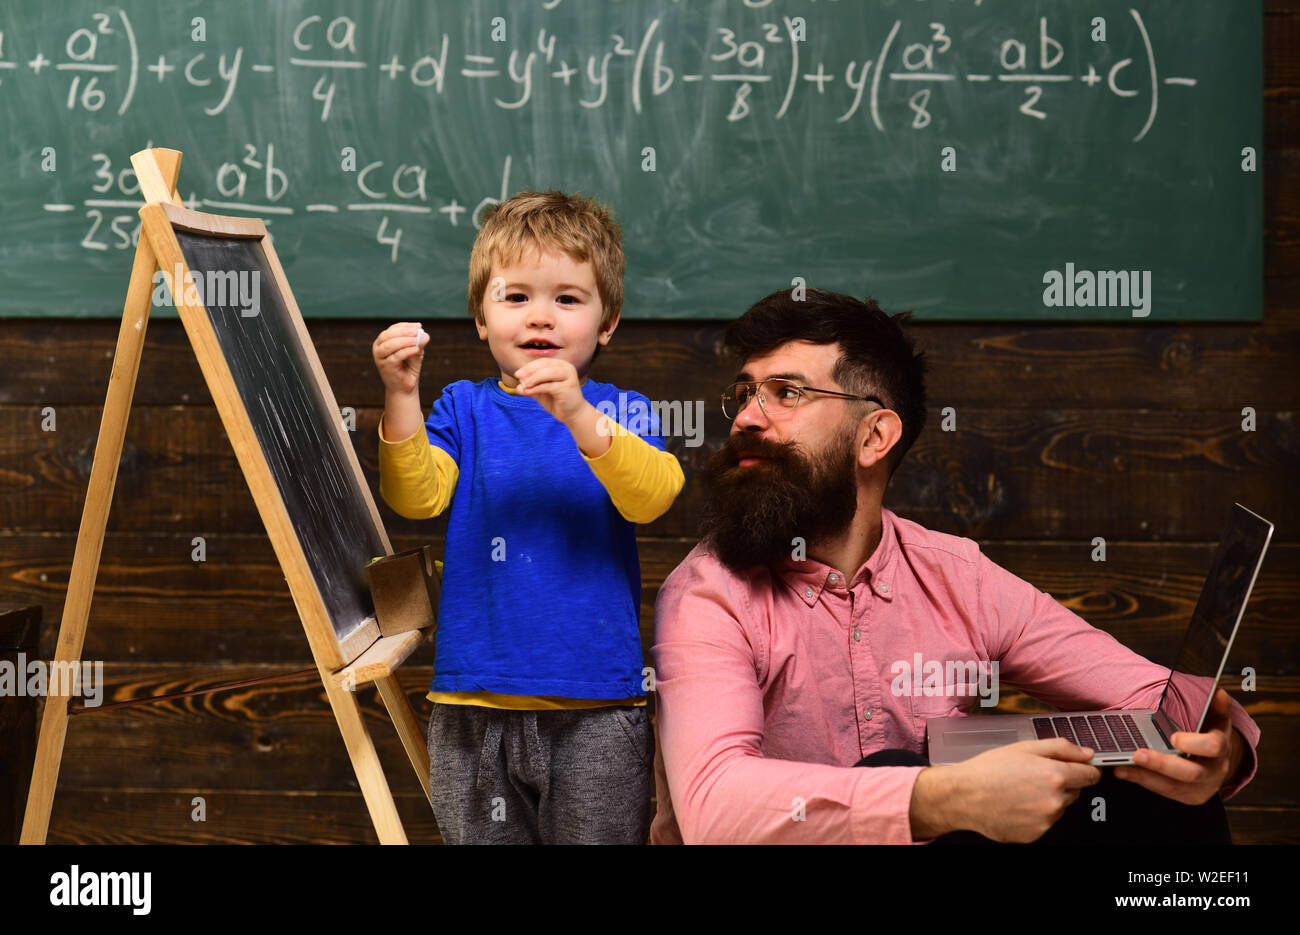 Kid reciting a poem while teacher listens attentively. Cool guy in pink shirt sitting on floor next to standing kid. Back to school. - Stock Image